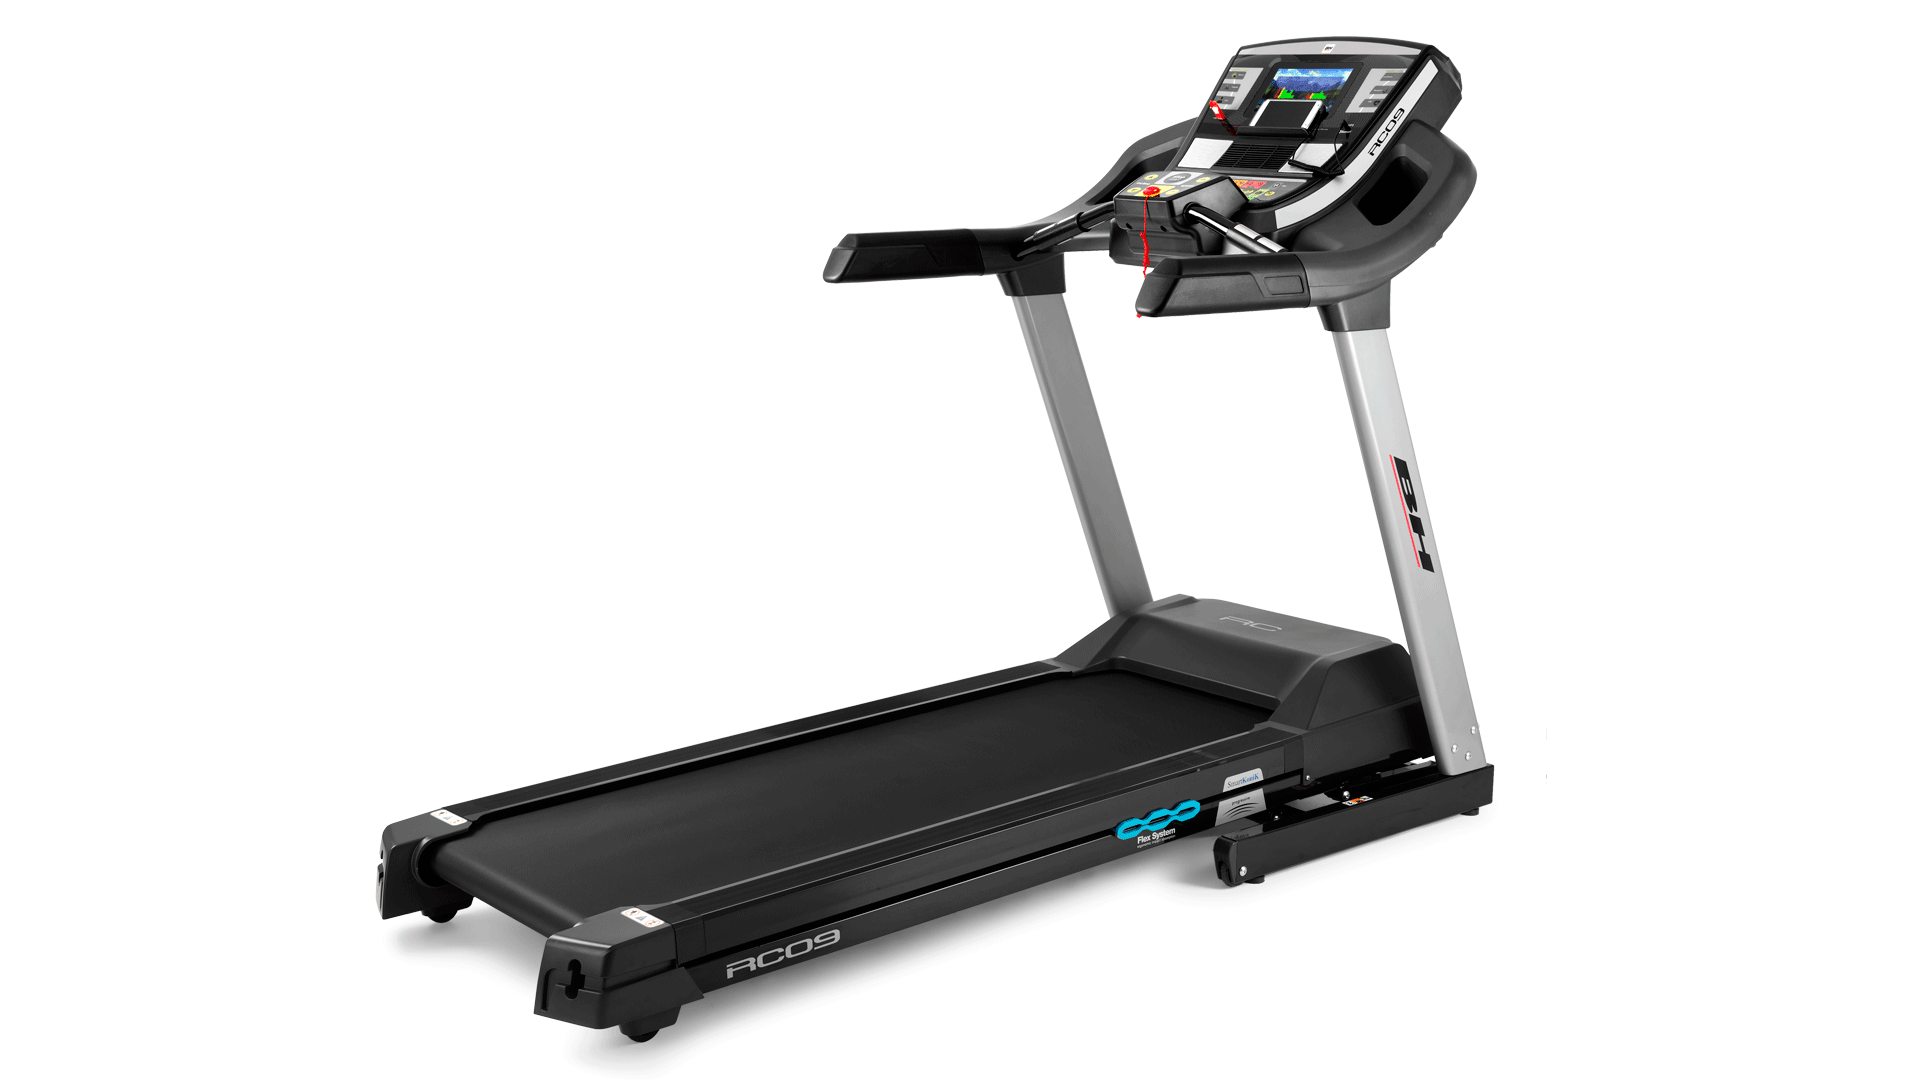 Treadmill Rc09 Tft I Intensive Use Bh Fitness At Home